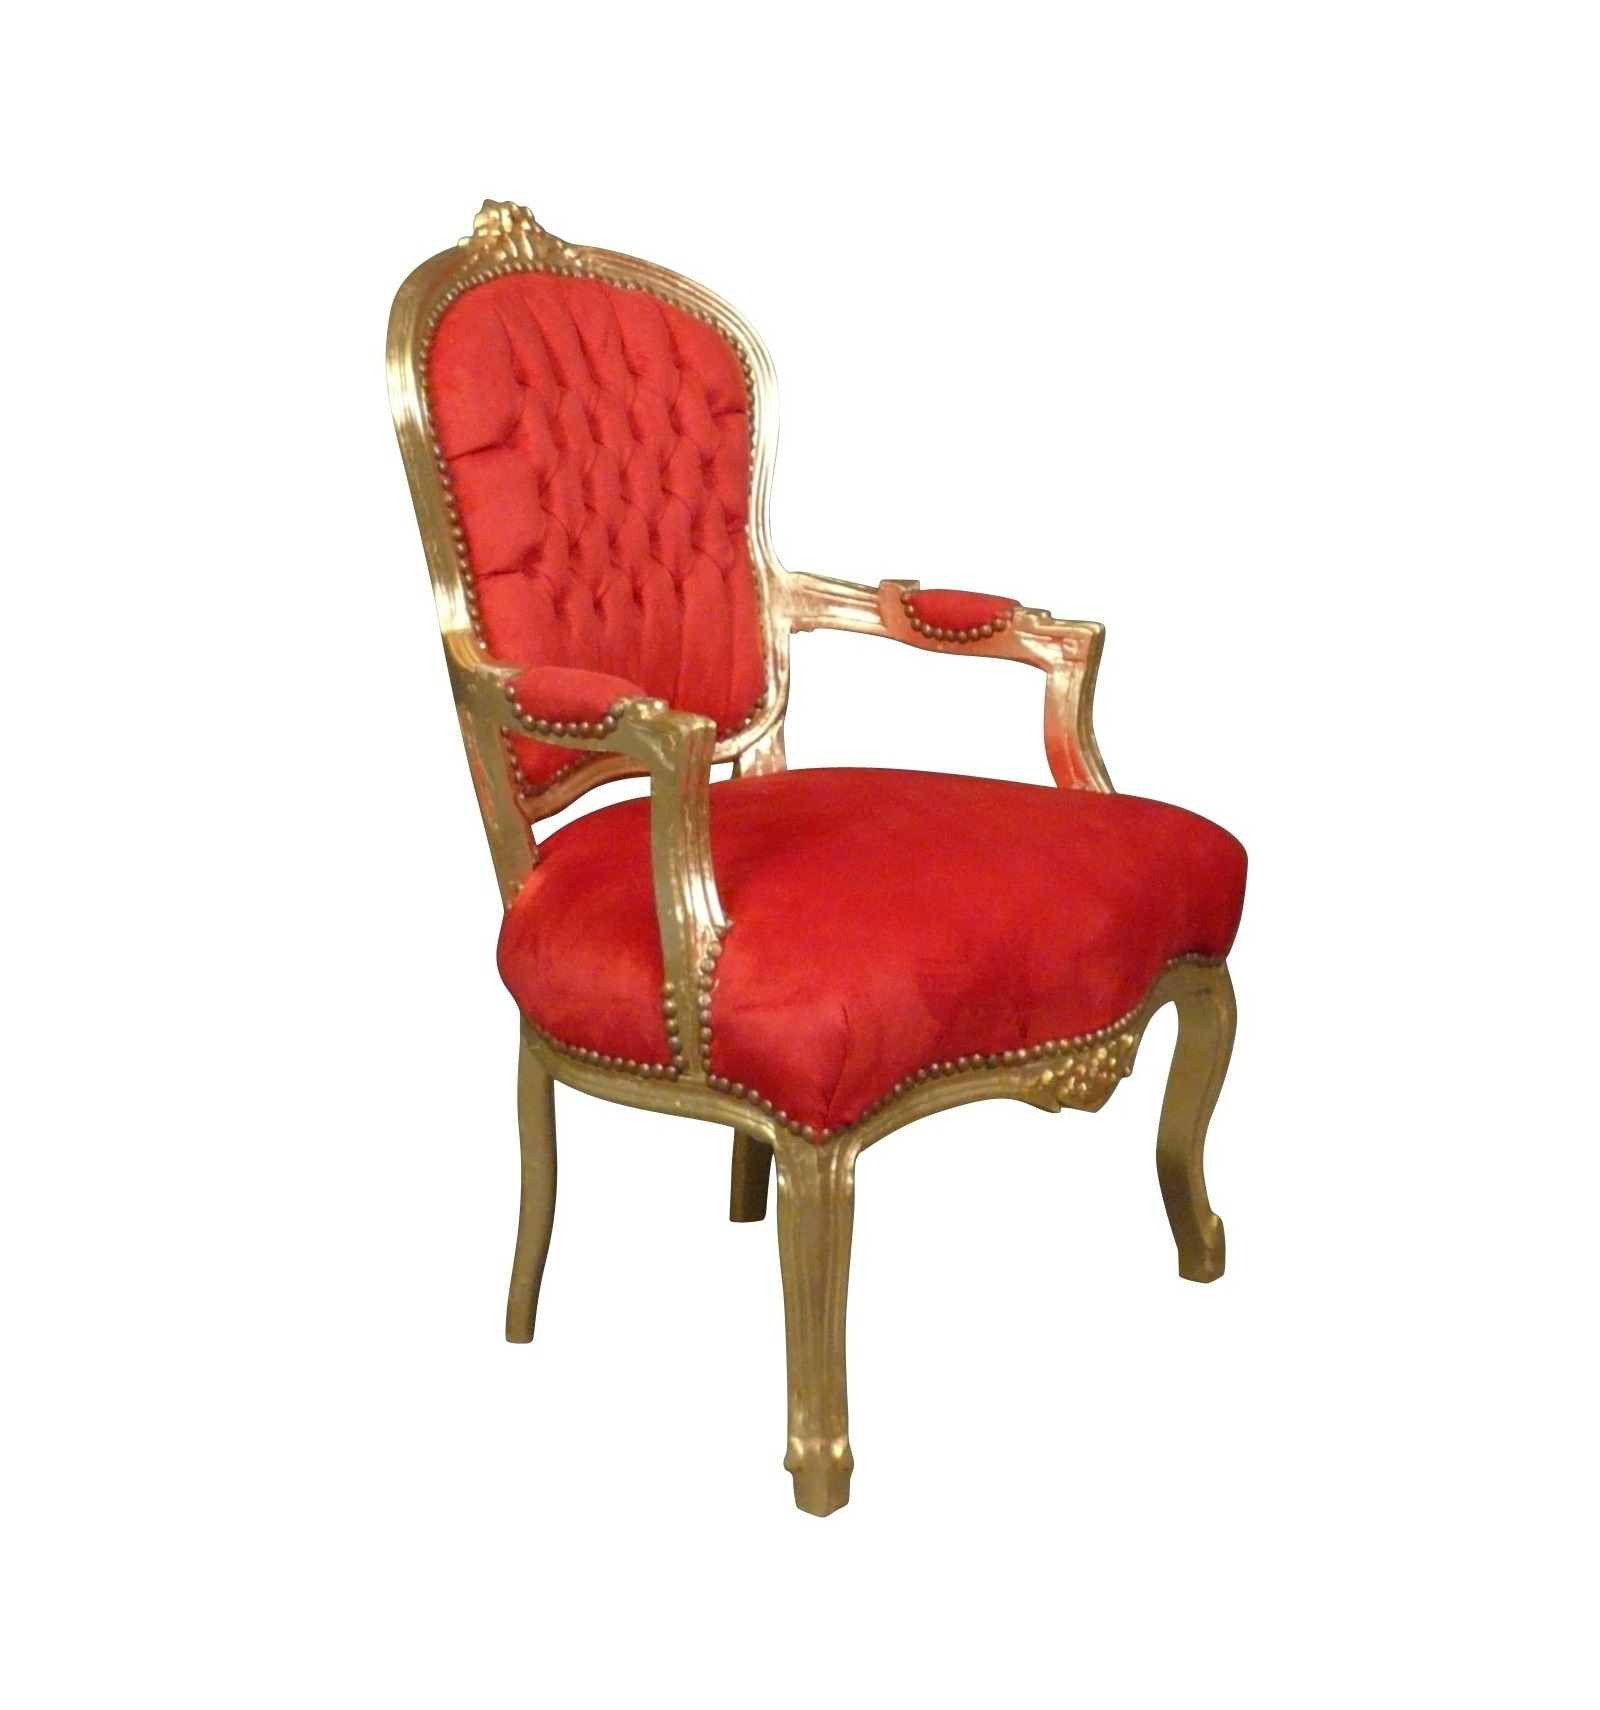 fauteuil louis xv baroque rouge et or fauteuils louis xv. Black Bedroom Furniture Sets. Home Design Ideas